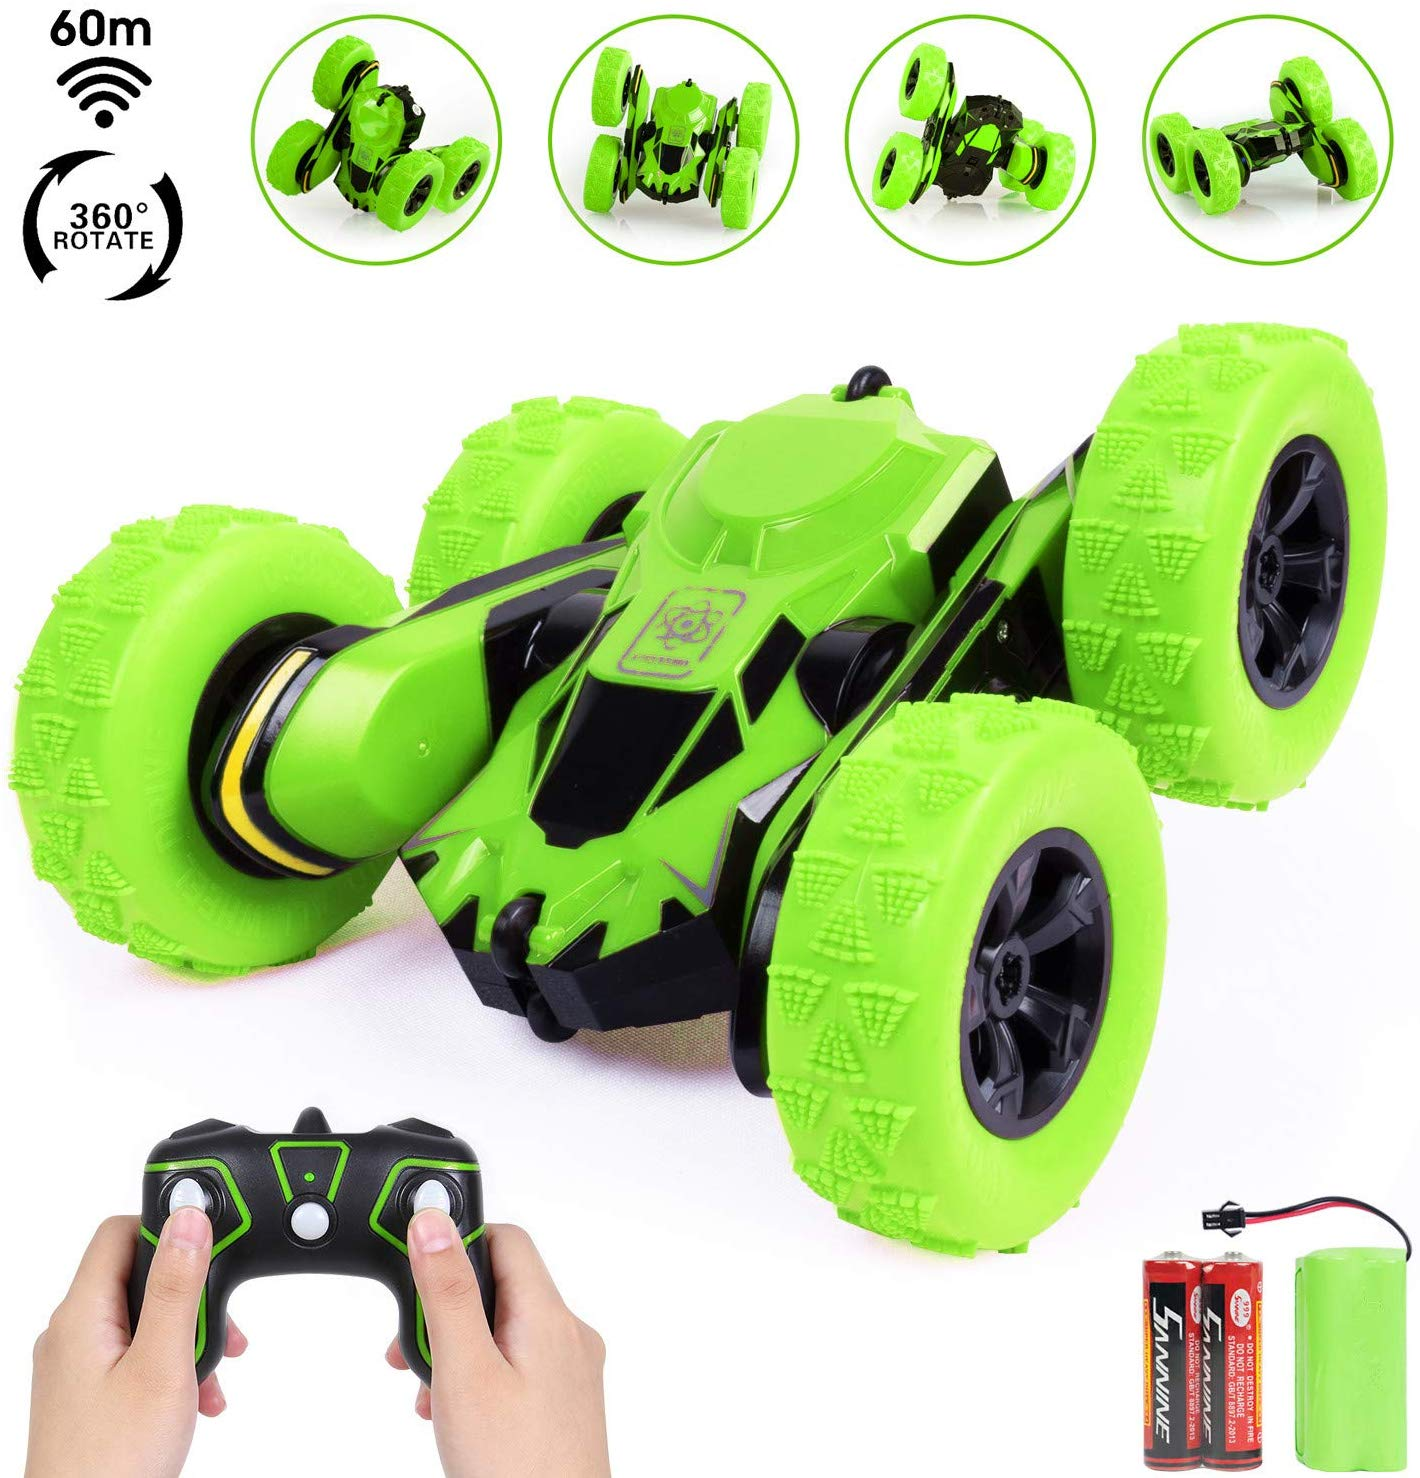 SGILE Toy Gift for 6-12 Years Old Kids – 360° Flip Remote Control Stunt Car Truck